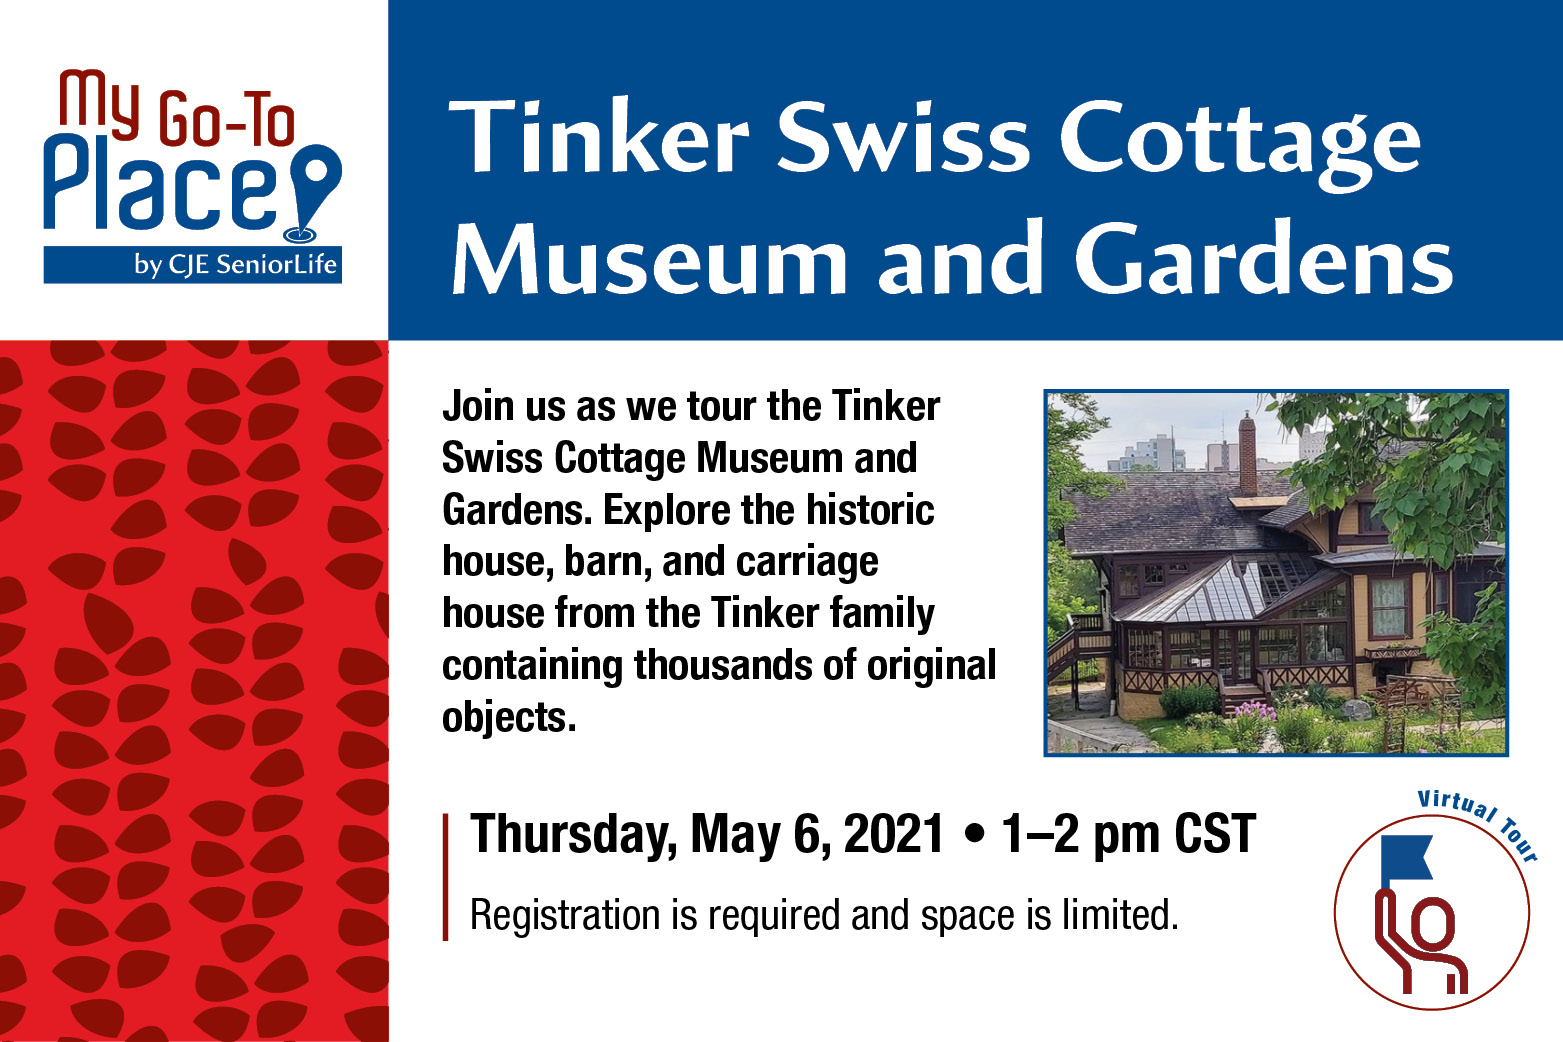 Tinker Swiss Cottage Museum and Gardens